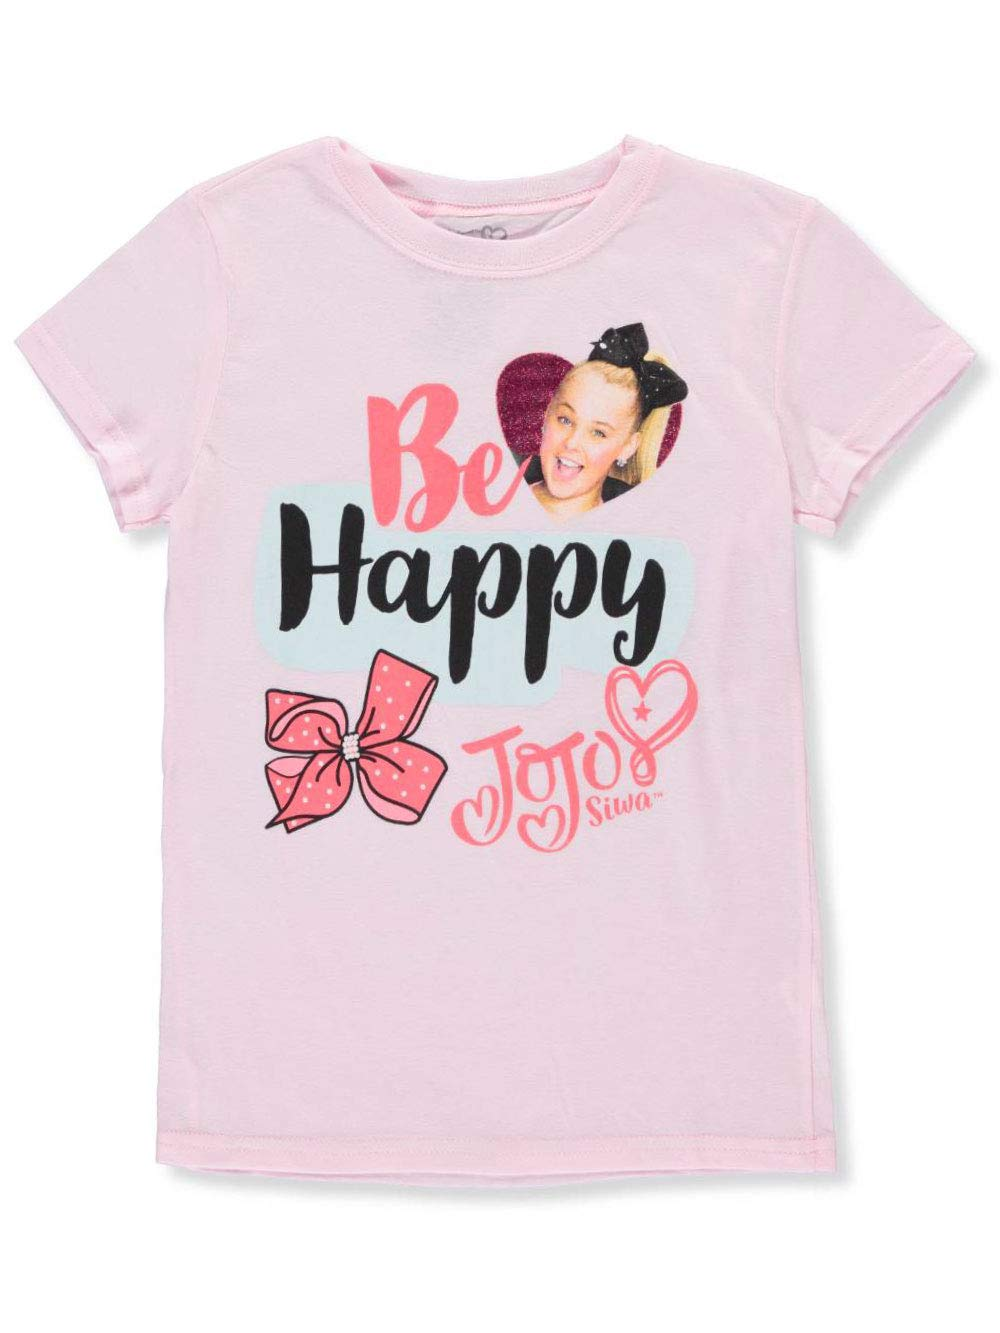 Jojo Siwa Girls' T-Shirt Jojo Siwa Girls' T-Shirt